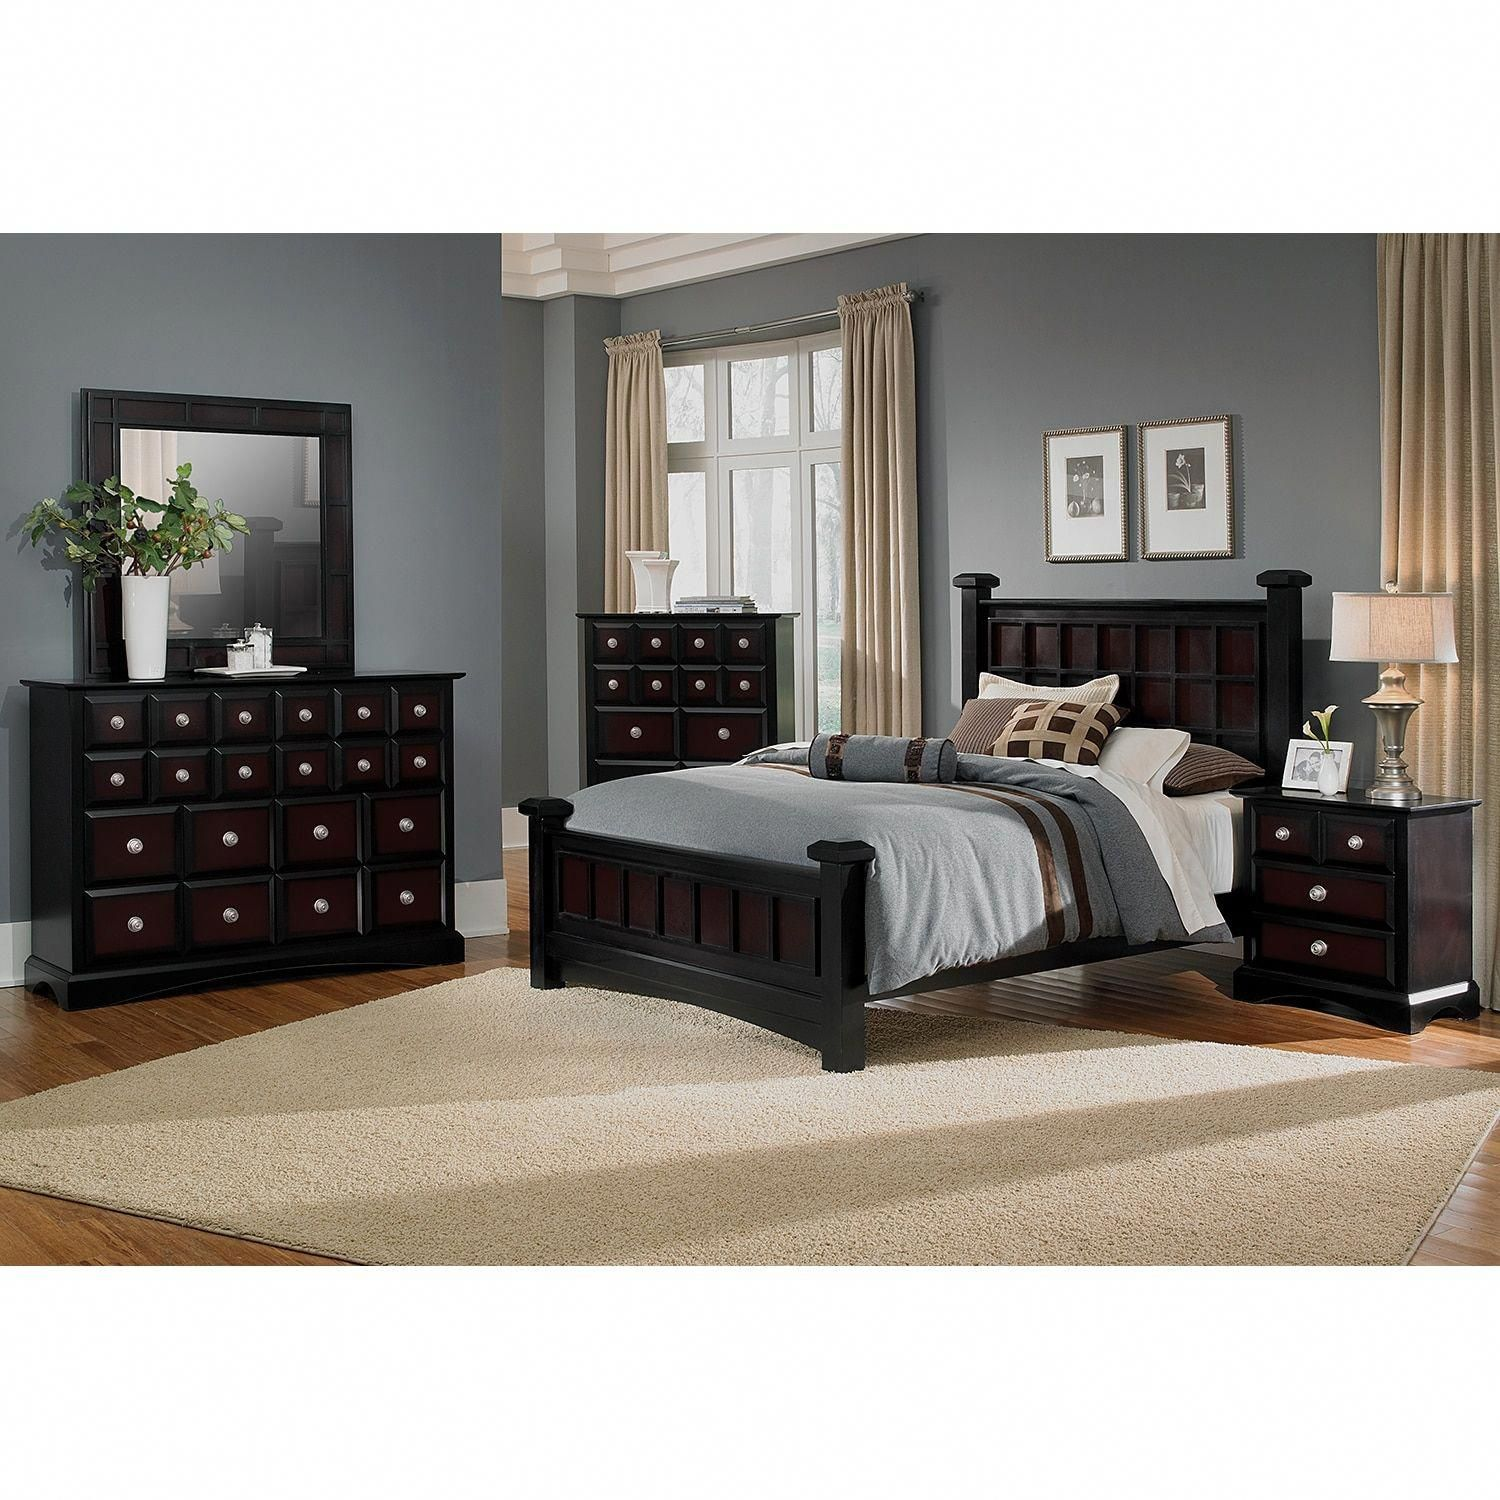 Furniture Stores In Maryland HContractFurniture Code